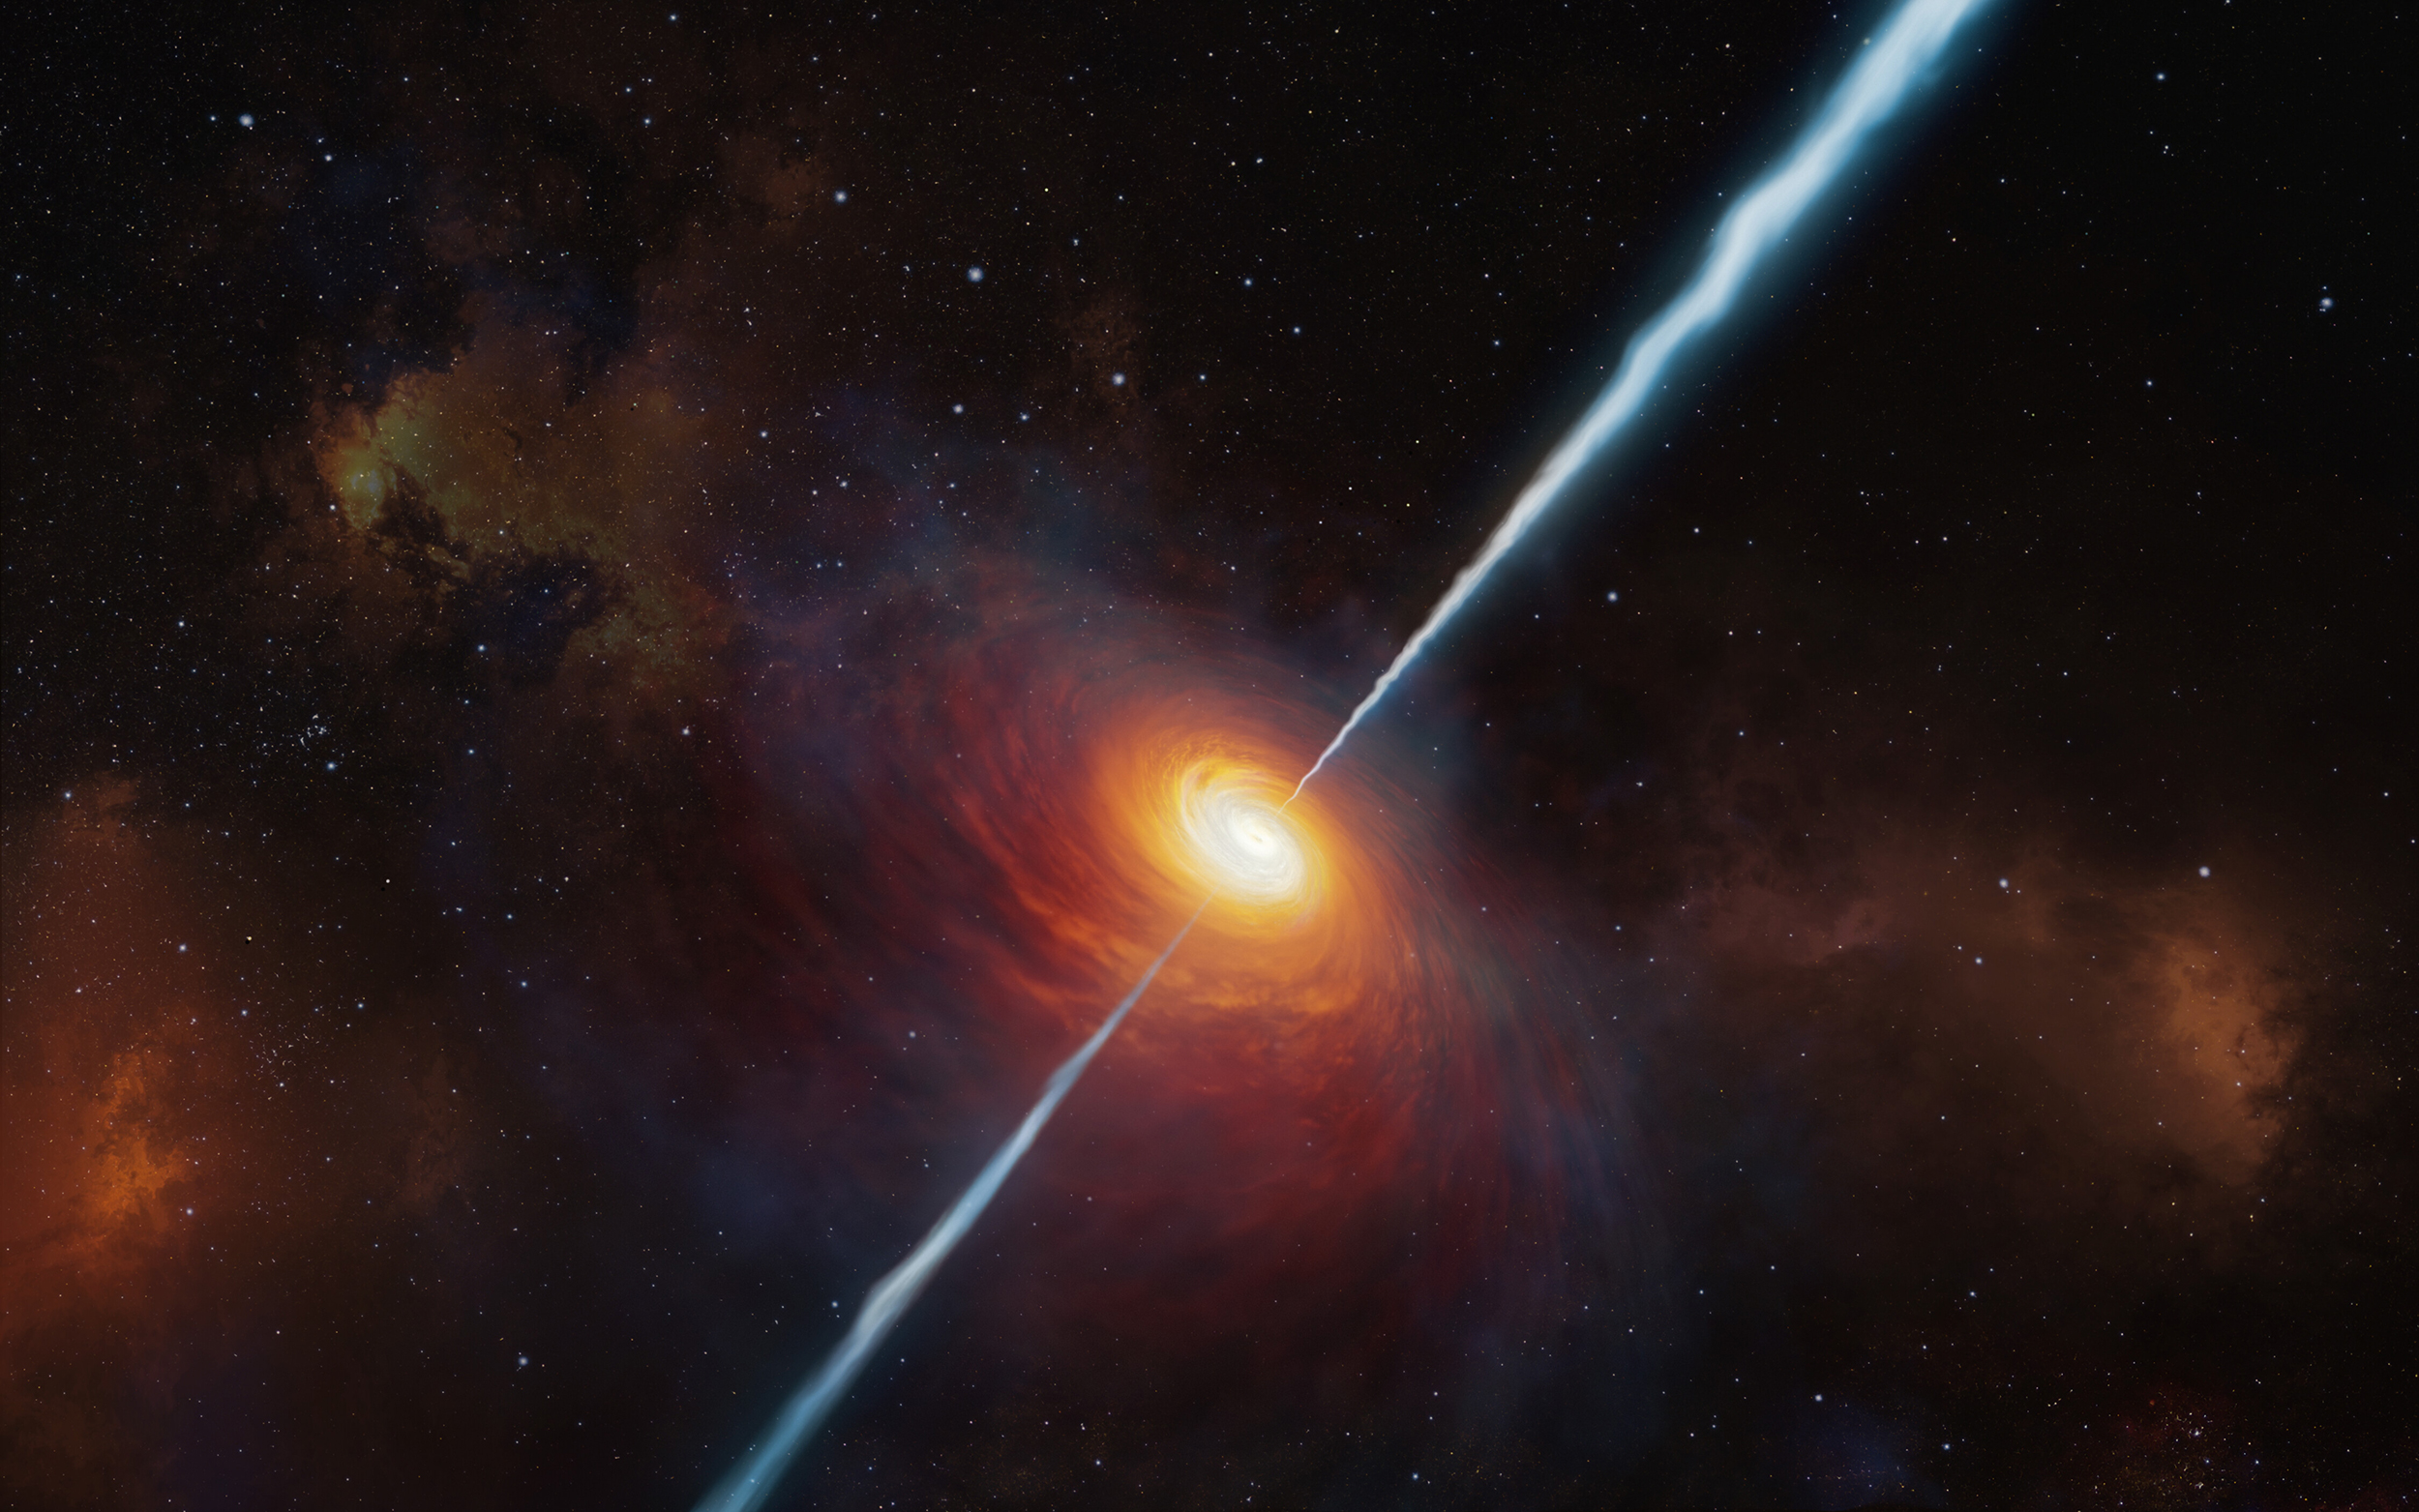 Most distant cosmic jet discovered 13 billion light-years away